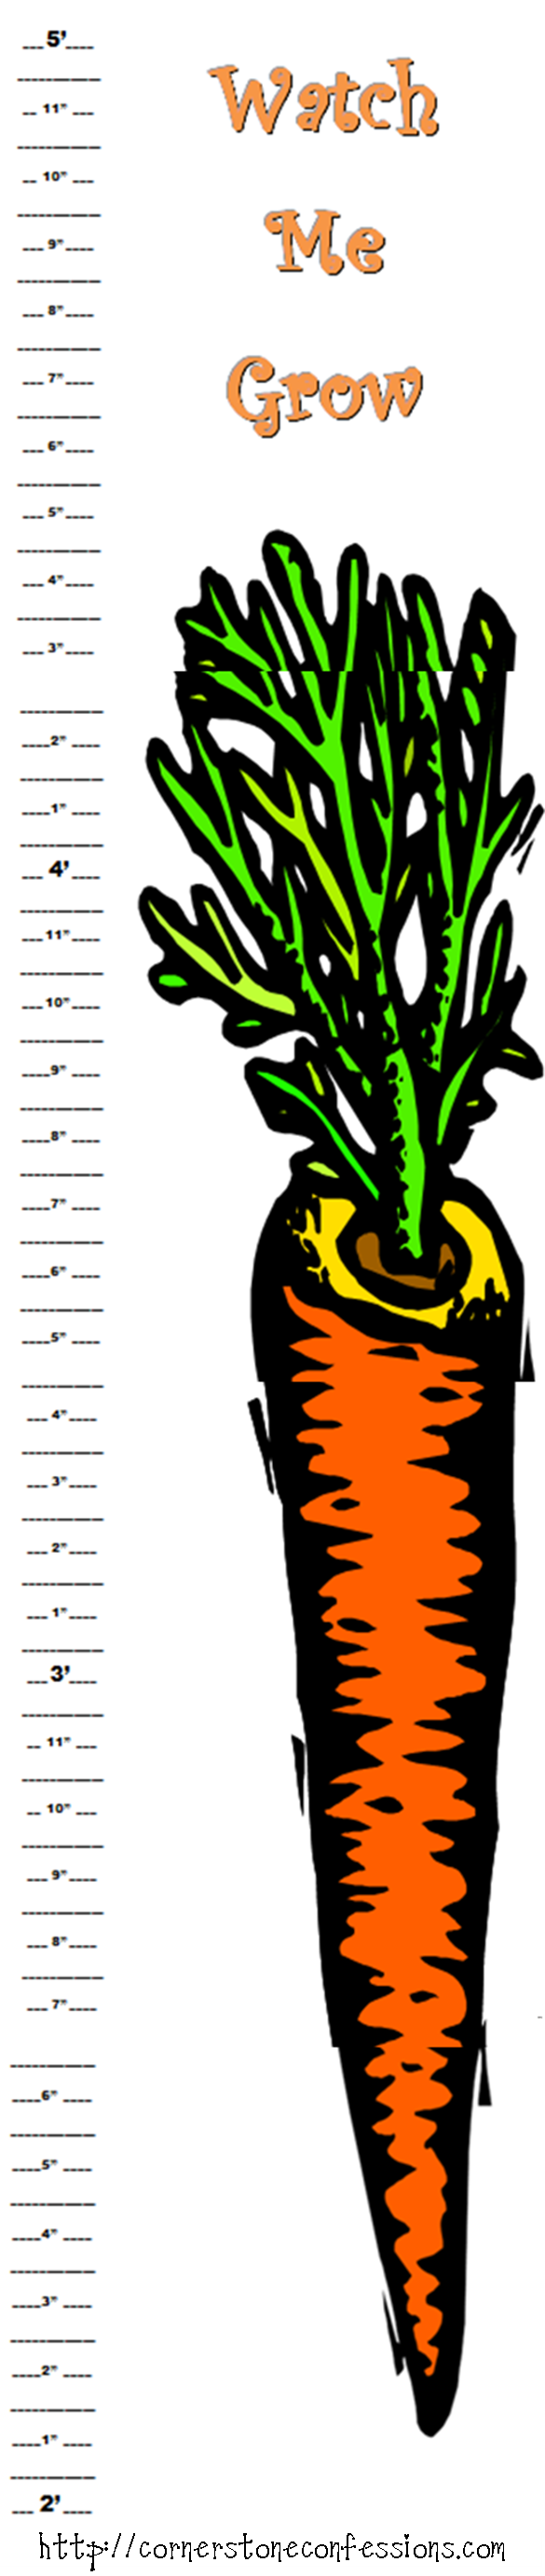 Carrot Height Chart #bfiar